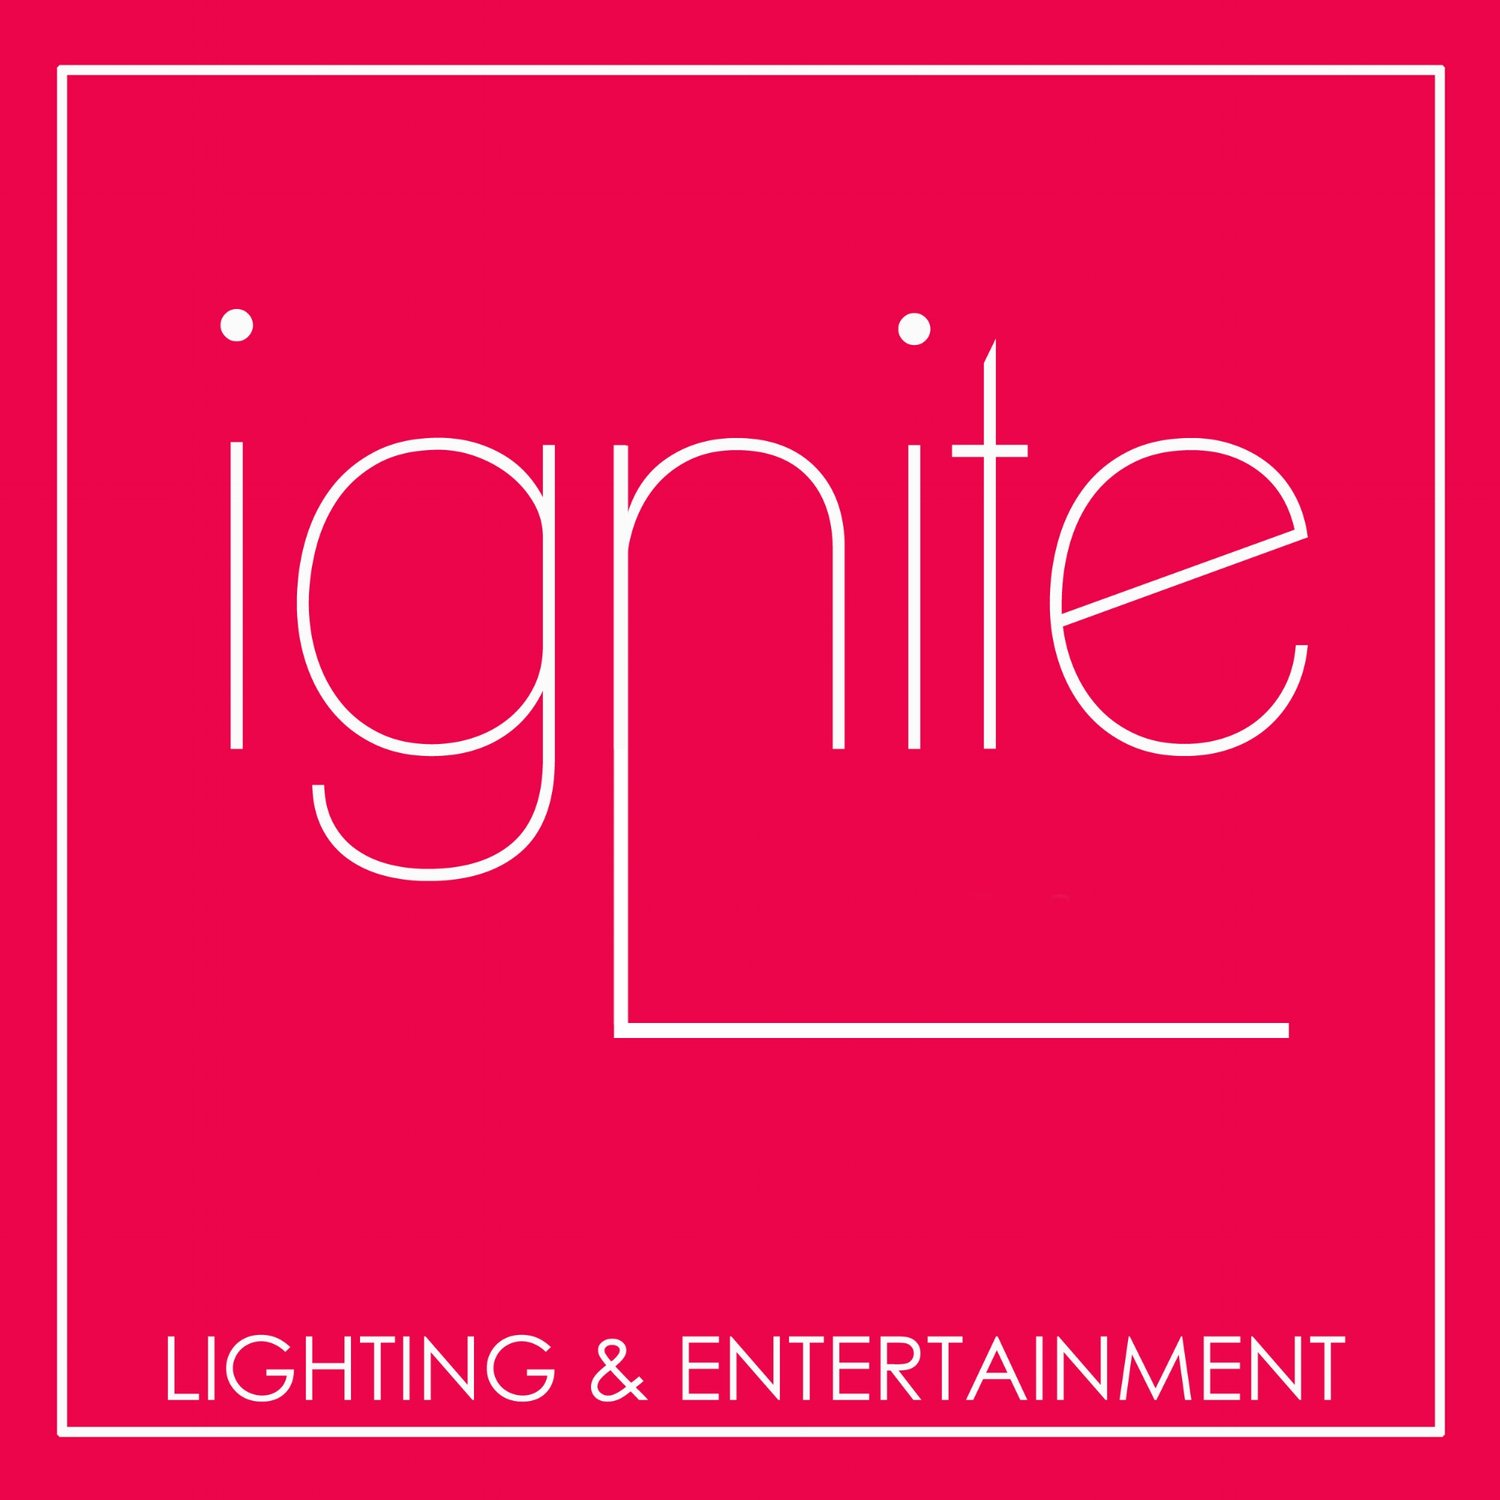 Ignite Lighting & Entertainment